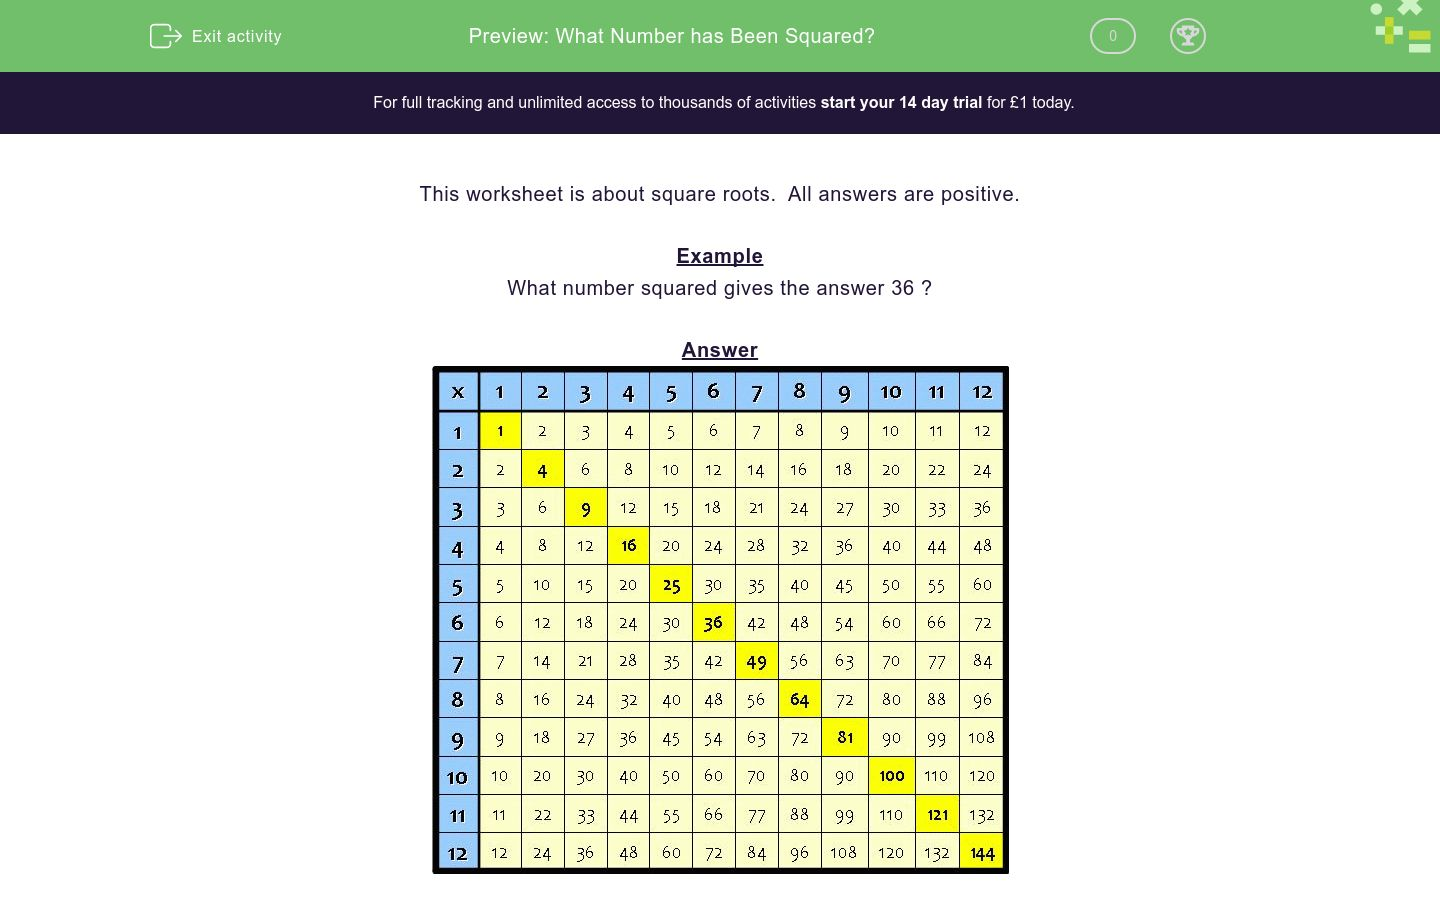 'What Number has Been Squared?' worksheet